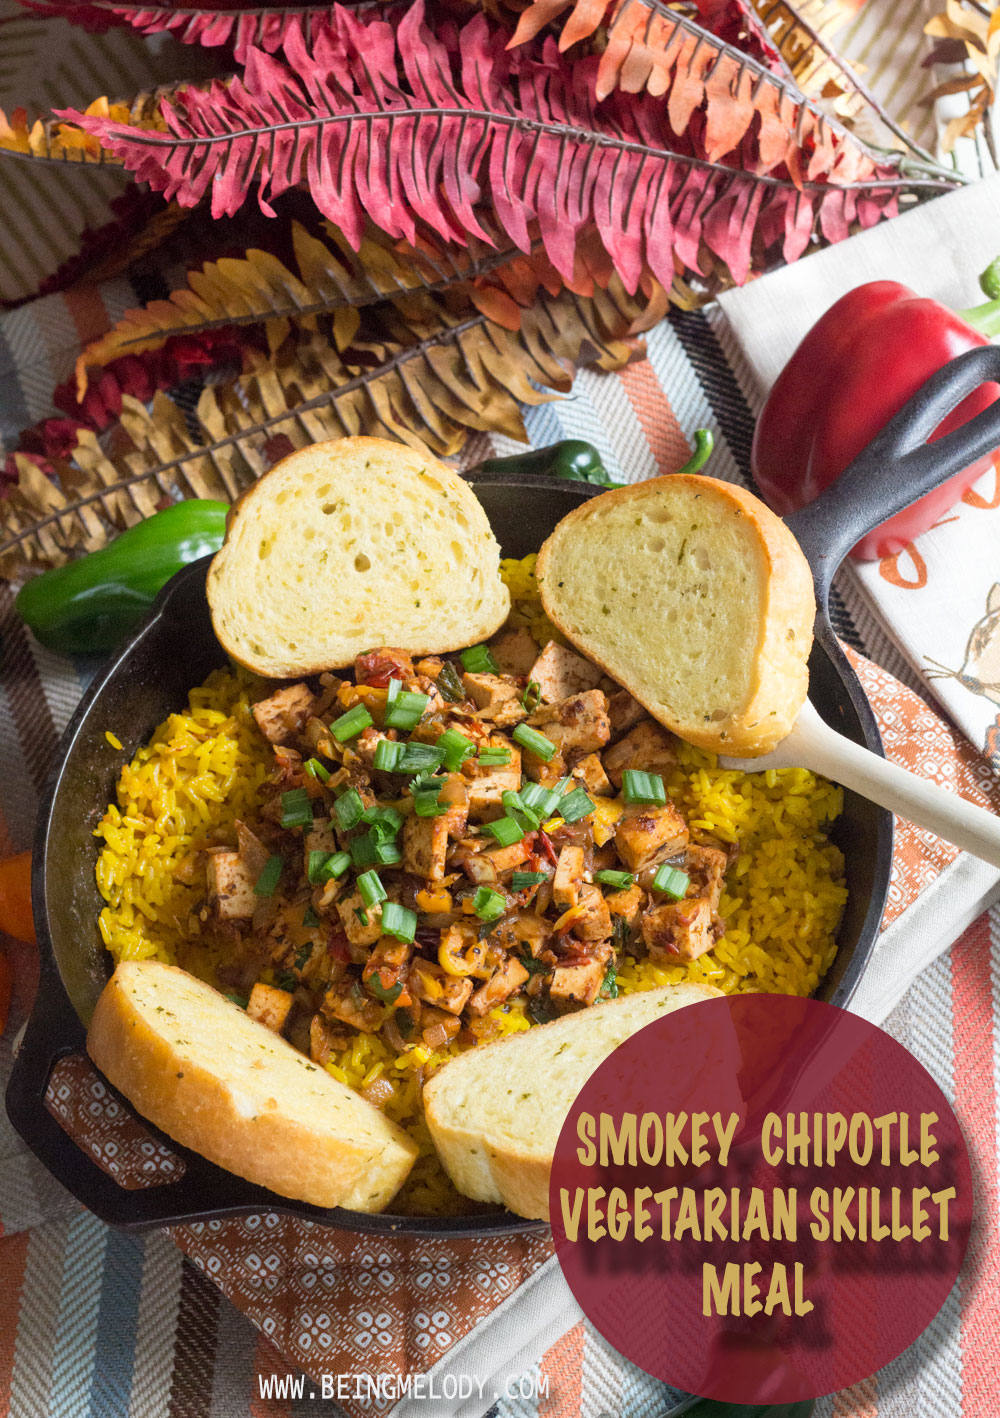 Looking for a quick weekday meal? Try this Smokey Chipotle Vegetarian Skillet! |BeingMelody.com| @BeingMelody